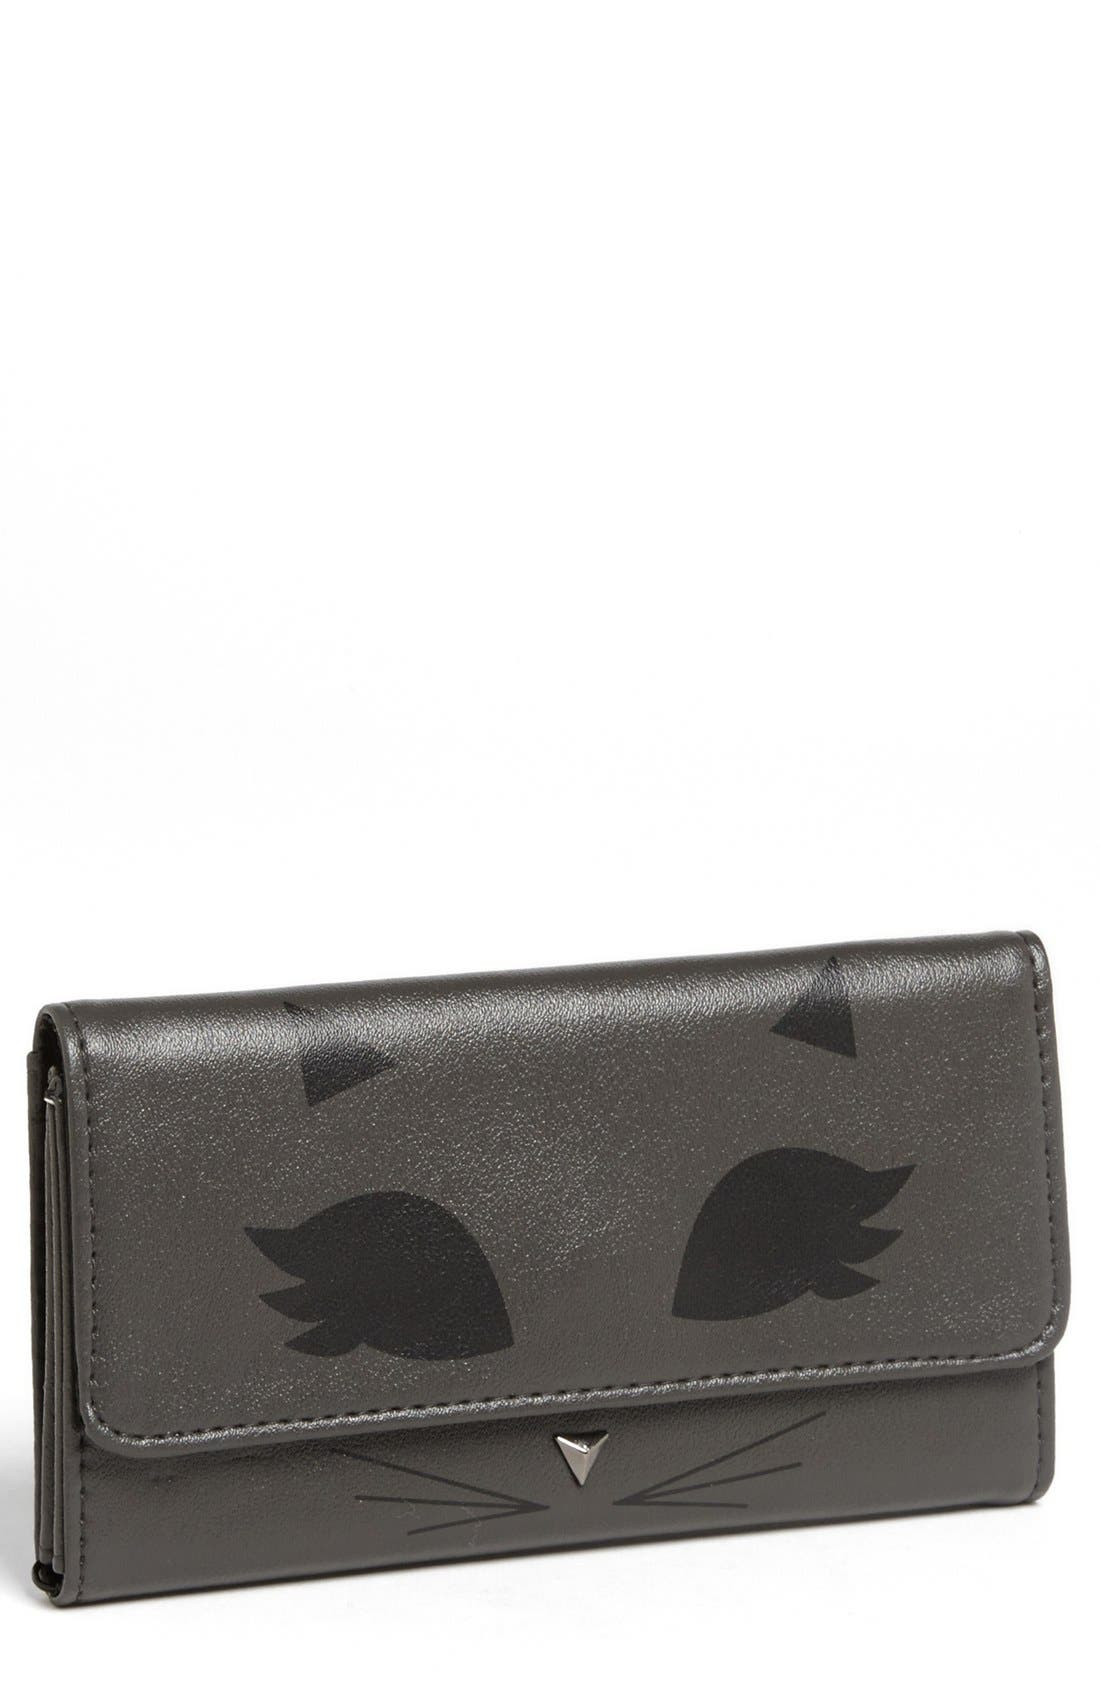 Alternate Image 1 Selected - Lulu 'Cat' Faux Leather Wallet